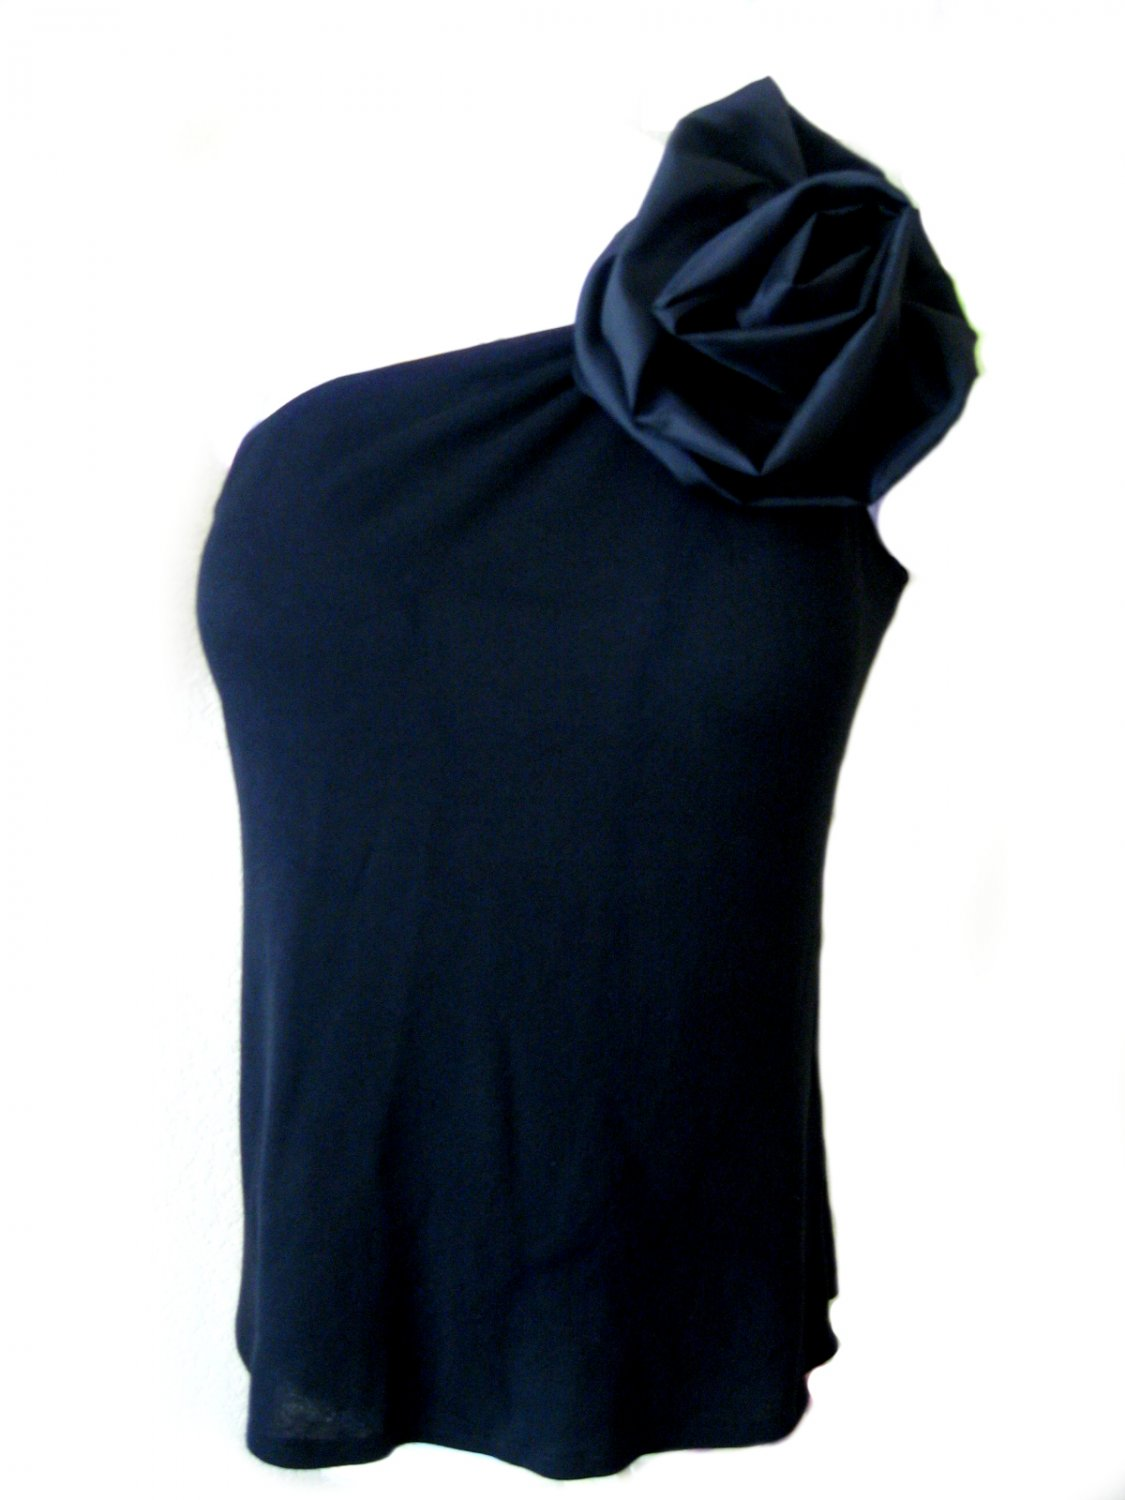 black one strap top/ Size:Large